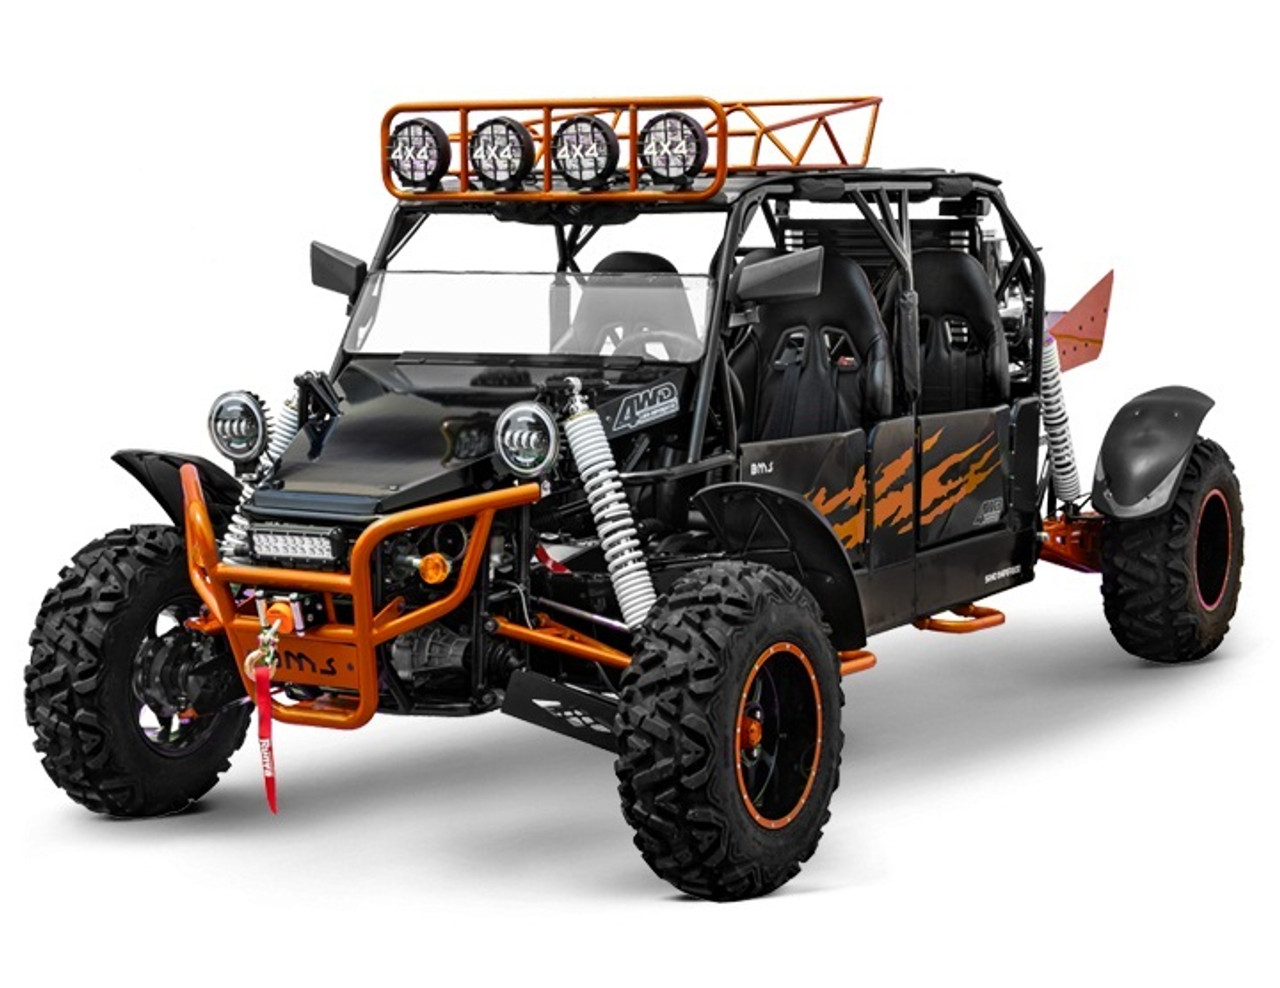 BMS V-TWIN BUGGY 800 PLATINUM 4SEATER, 794CC V-TWIN CYLINDER 4 STROKE WATER COOLED